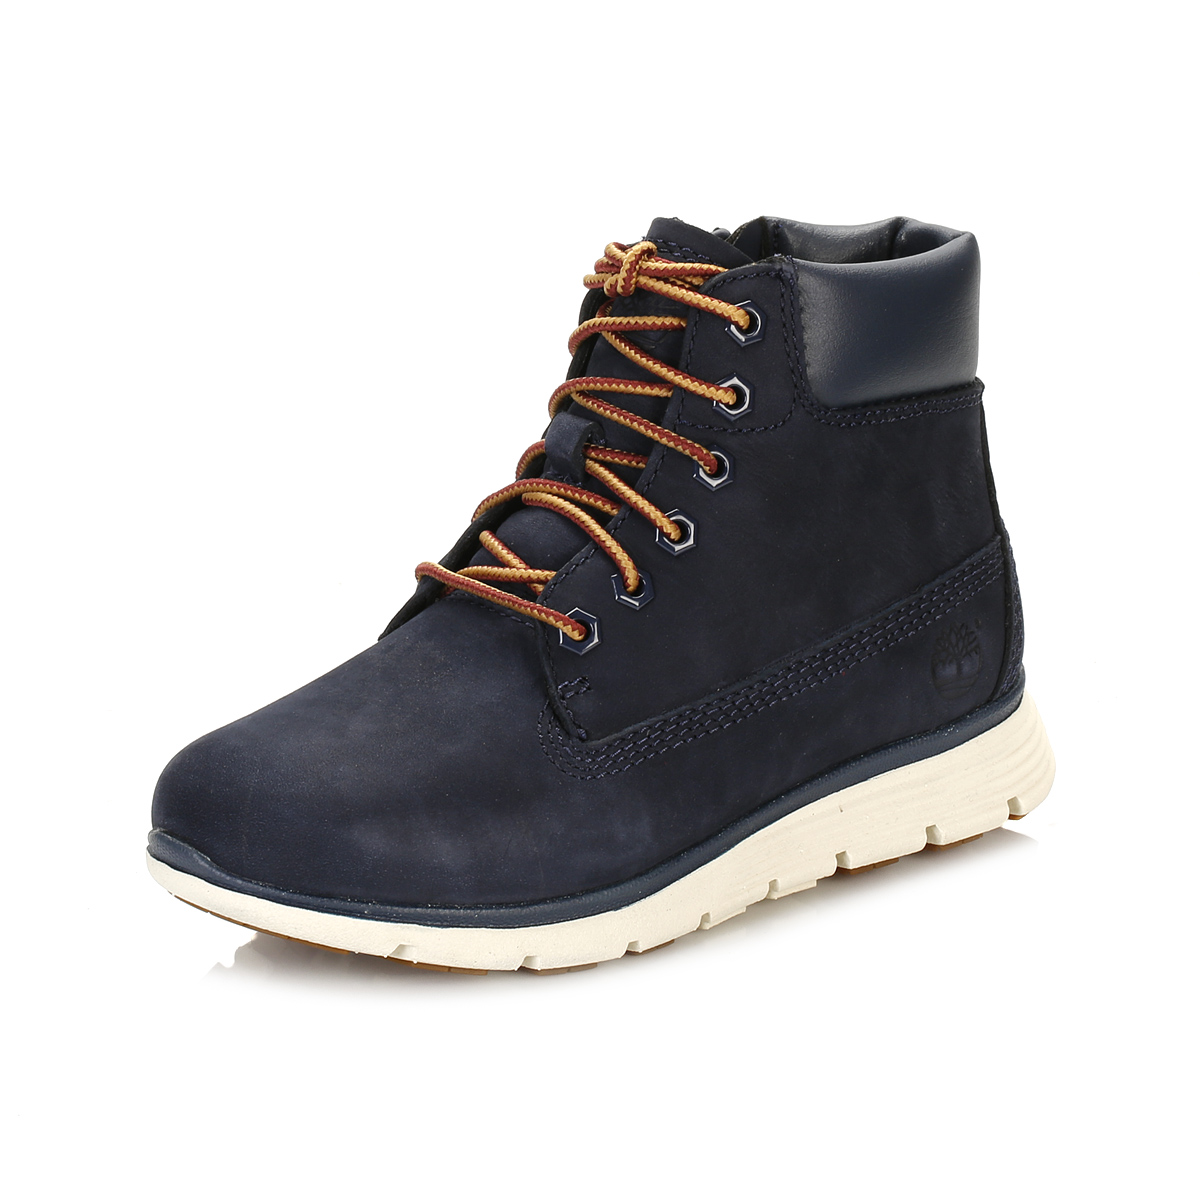 Elegant Timberland Glancy 6 IN Womenu0026#39;s Navy Low Heel Ankle Boots | Shiekh Shoes